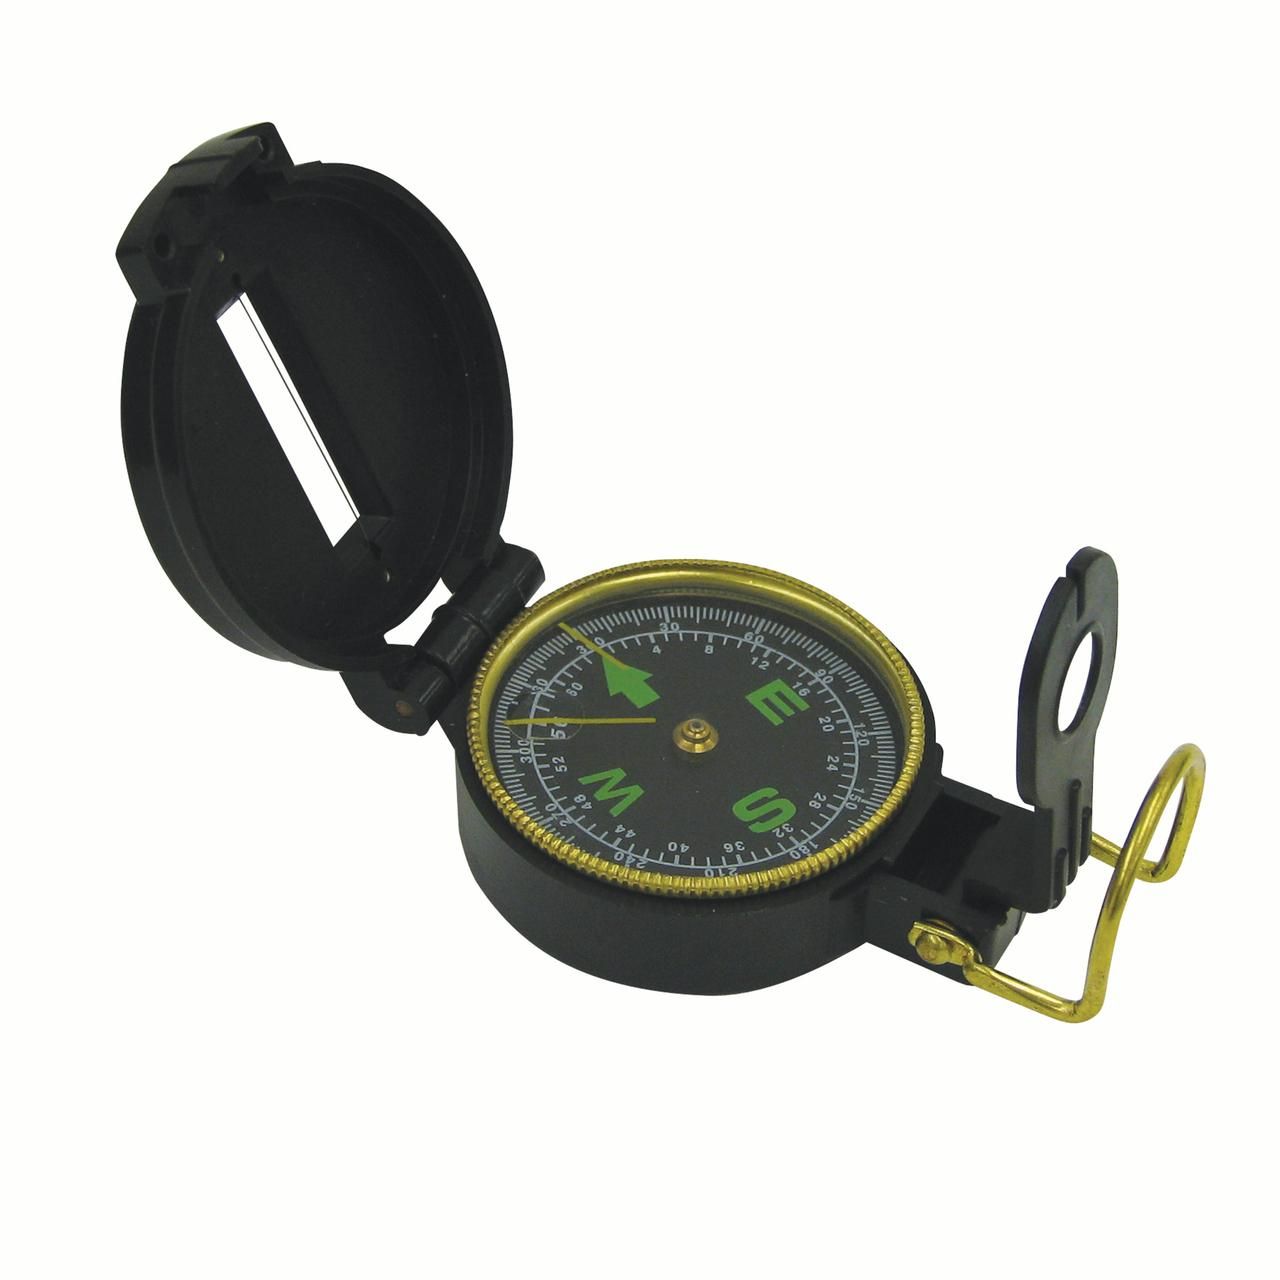 Stansport 550-P Lensatic Compass Plastic by Stansport